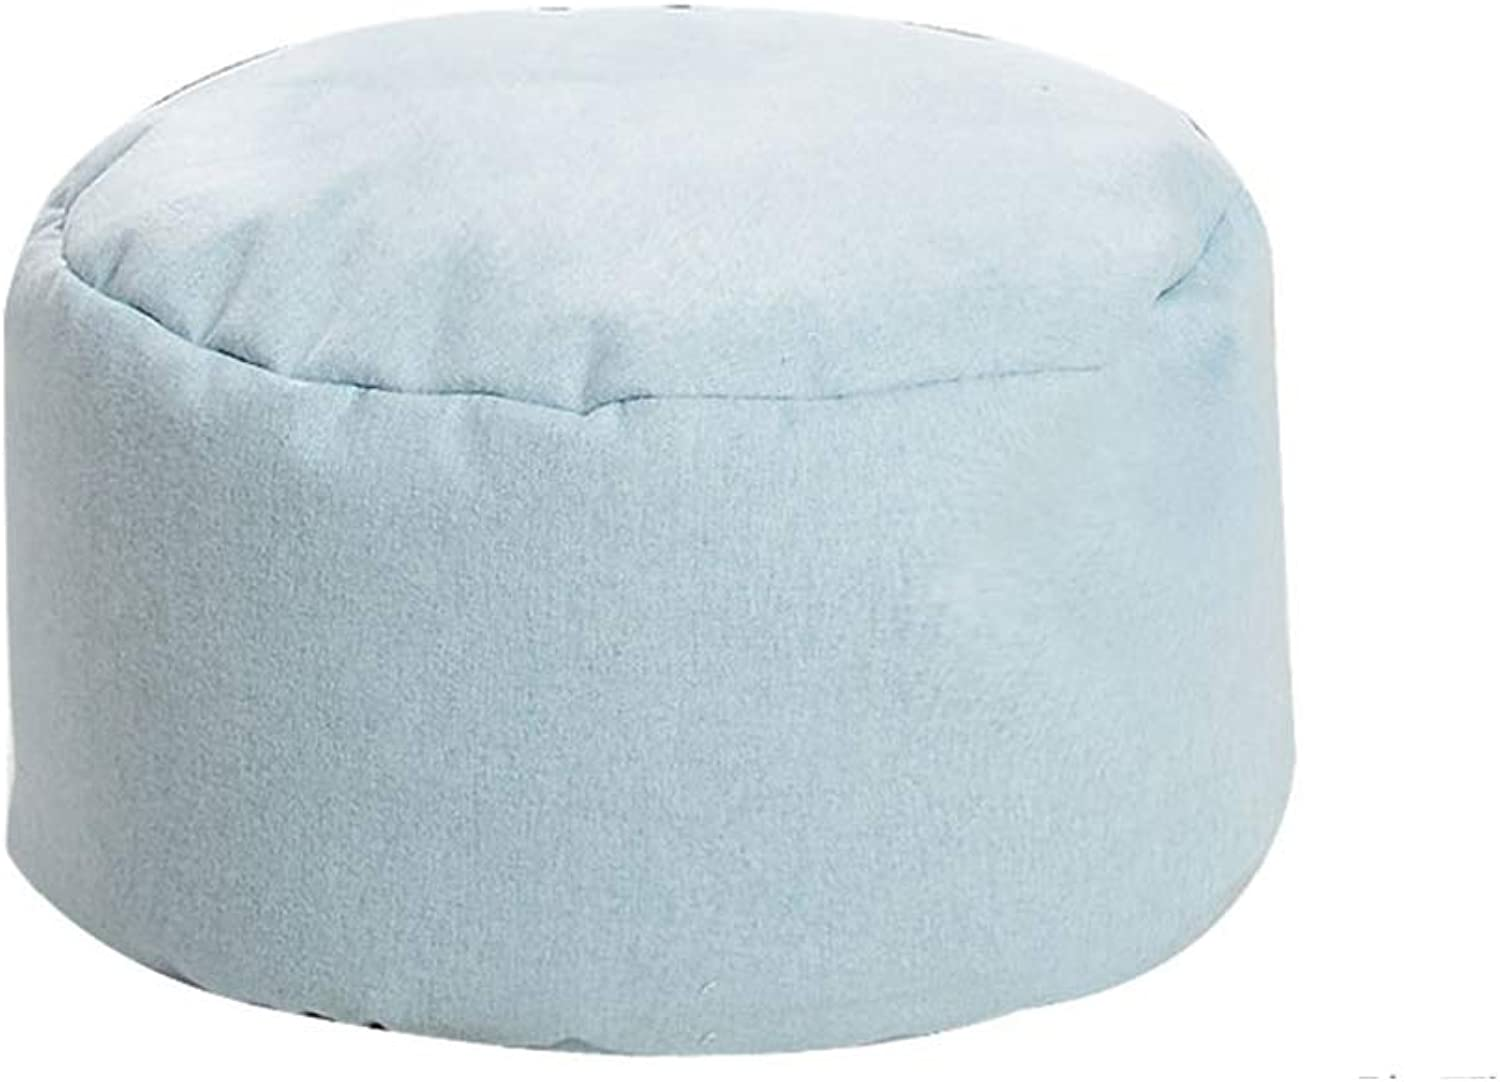 Bean Bag Chair Lazy Couch Footstool Living Room Bedroom Quality Filler Removable and Washable ( color   C )